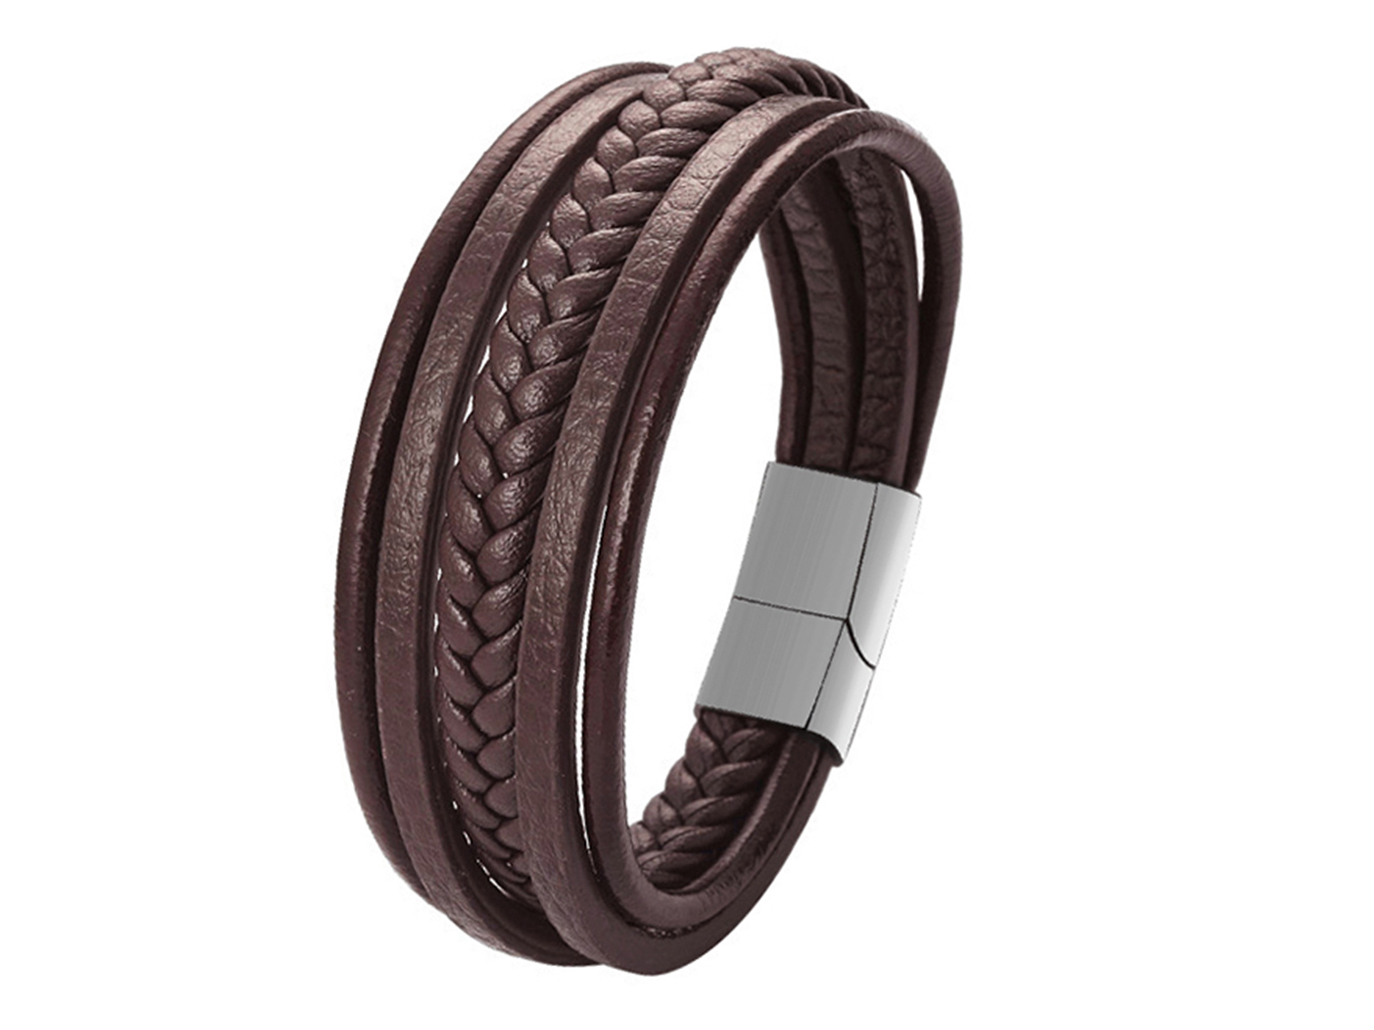 SSB0140R1 black Multi Layer Braided Leather Magnetic Clasp